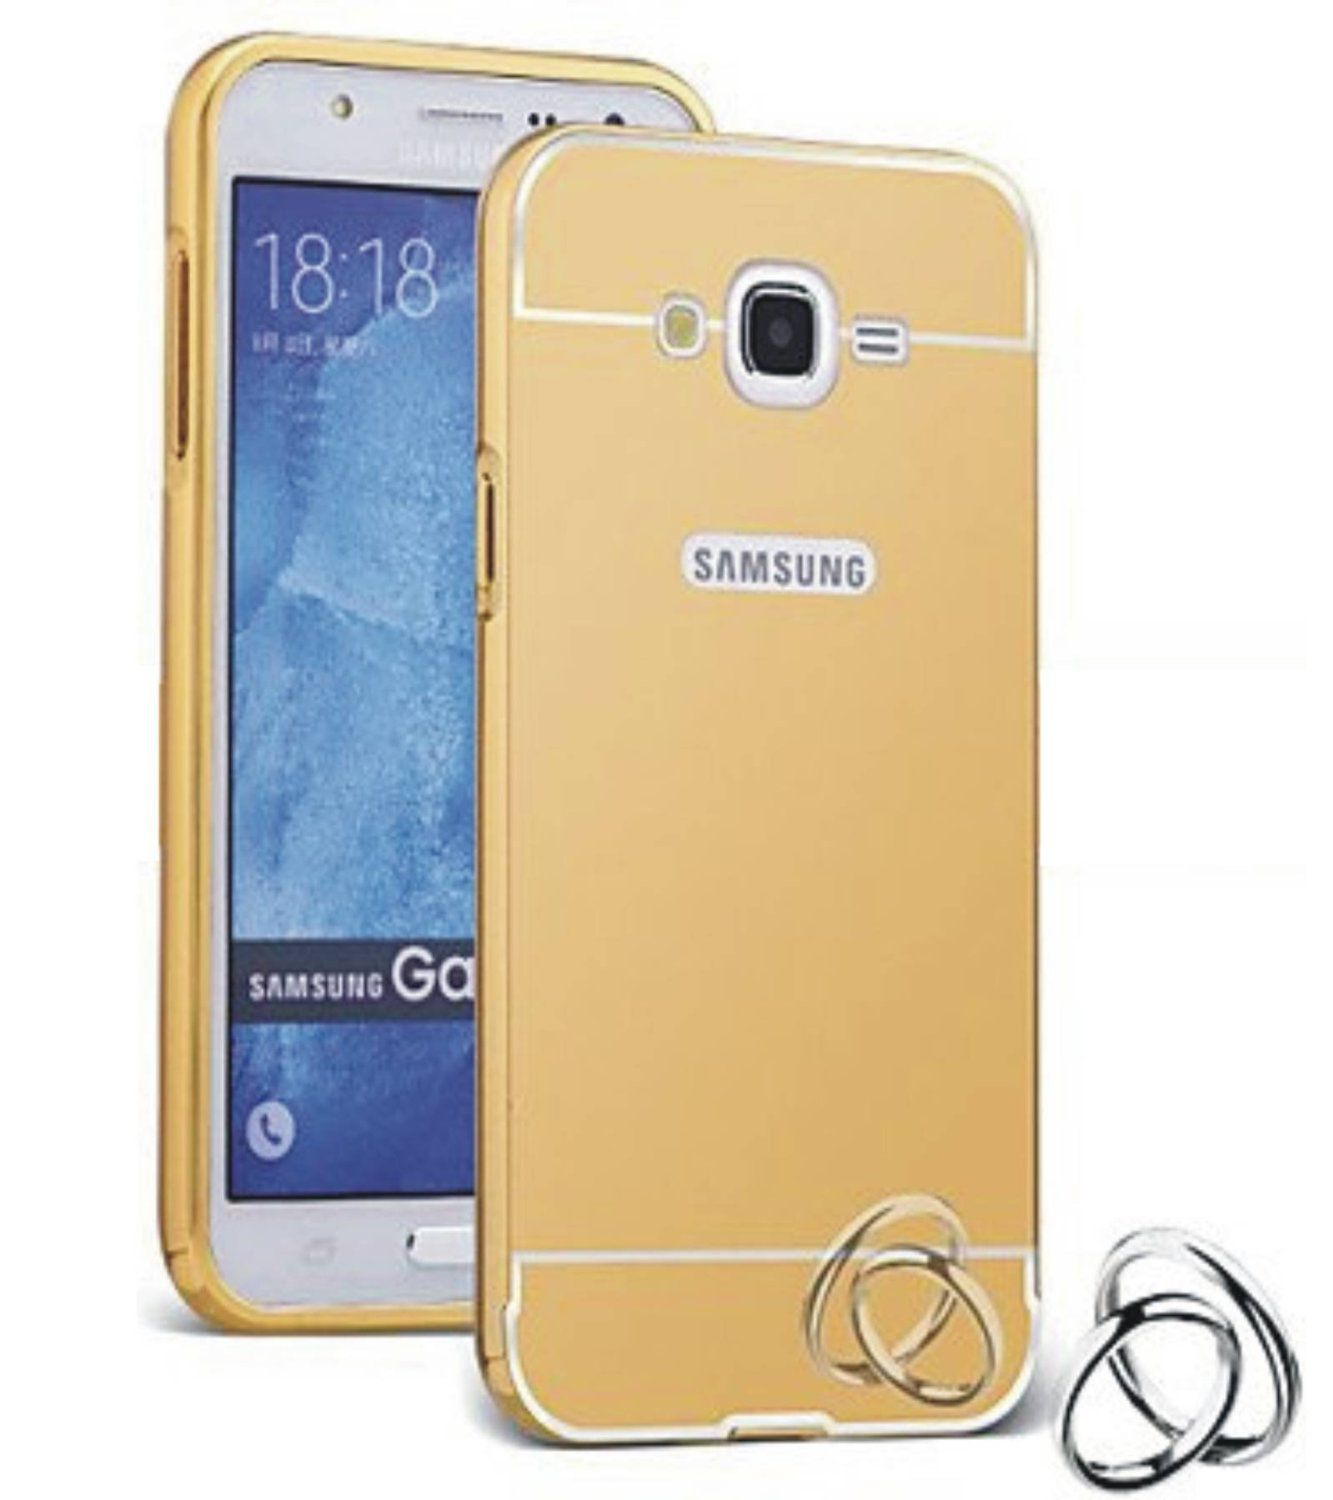 Style Crome Metal Bumper + Acrylic Mirror Back Cover Case For Samsung7106 Gold + Flexible Portable Thumb OK Stand